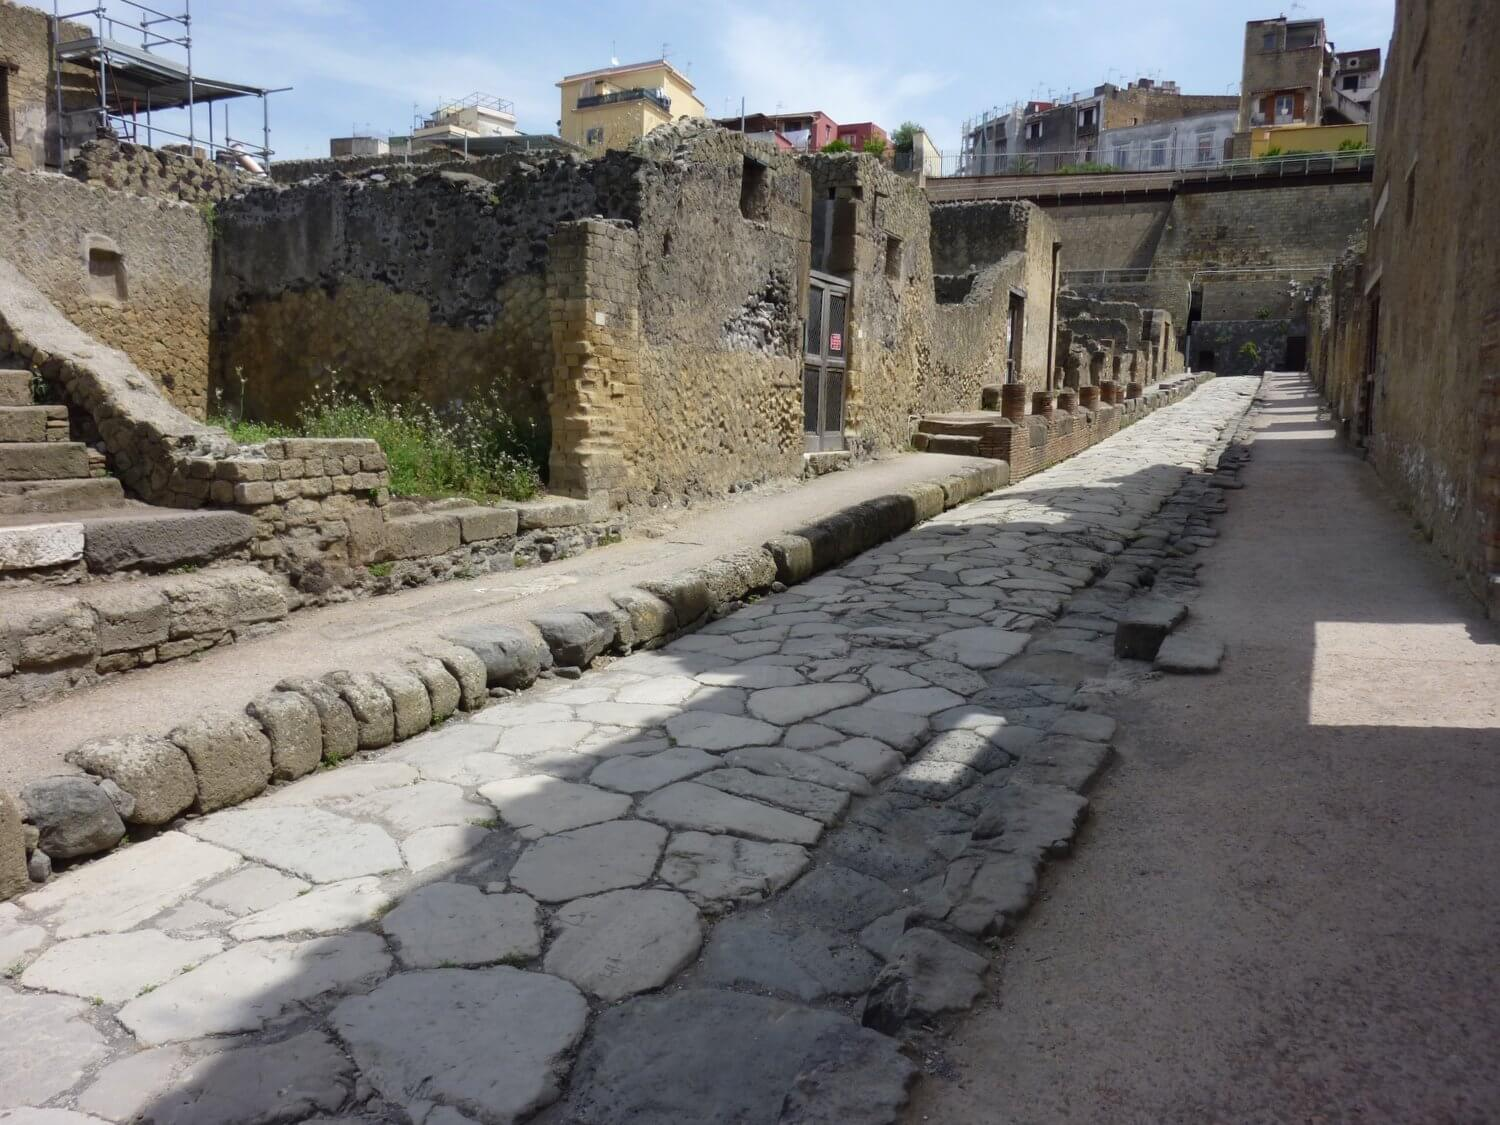 deserted streets of Herculaneum